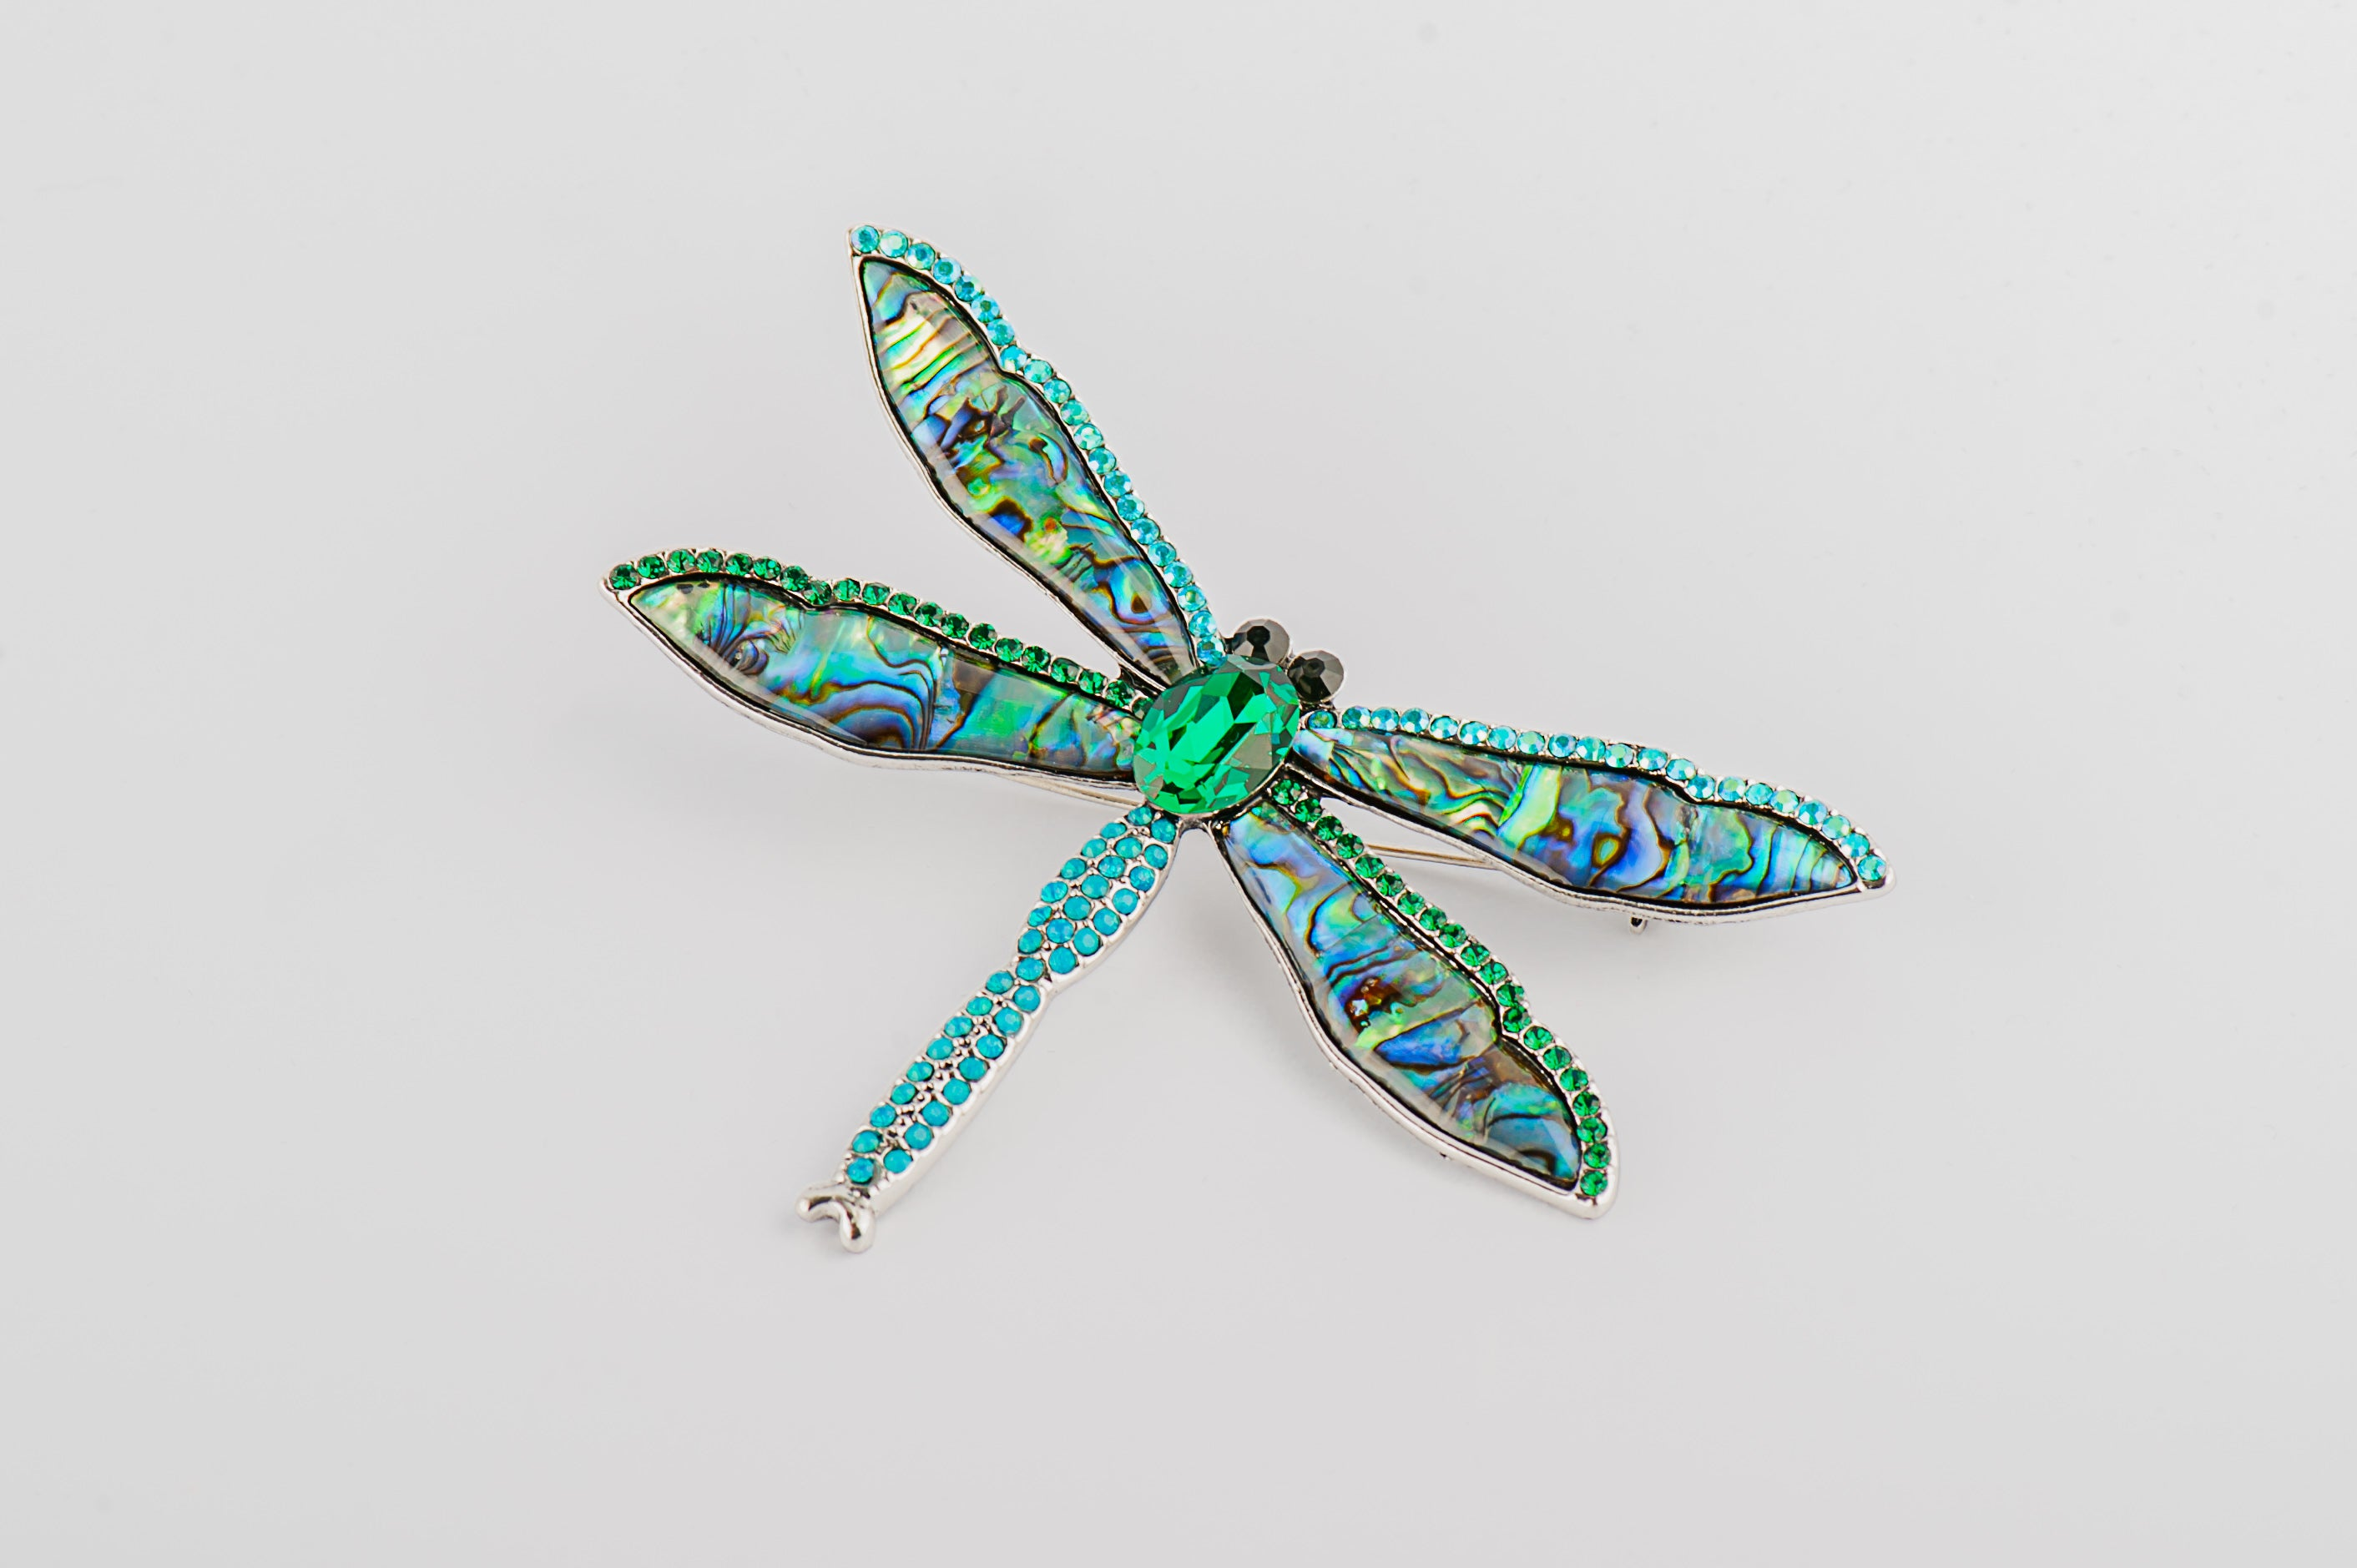 paua shell brooch pin uk vintage fashion accessories large colourful dragonfly brosa mare martisor cadou always cass brosa colorata libelula